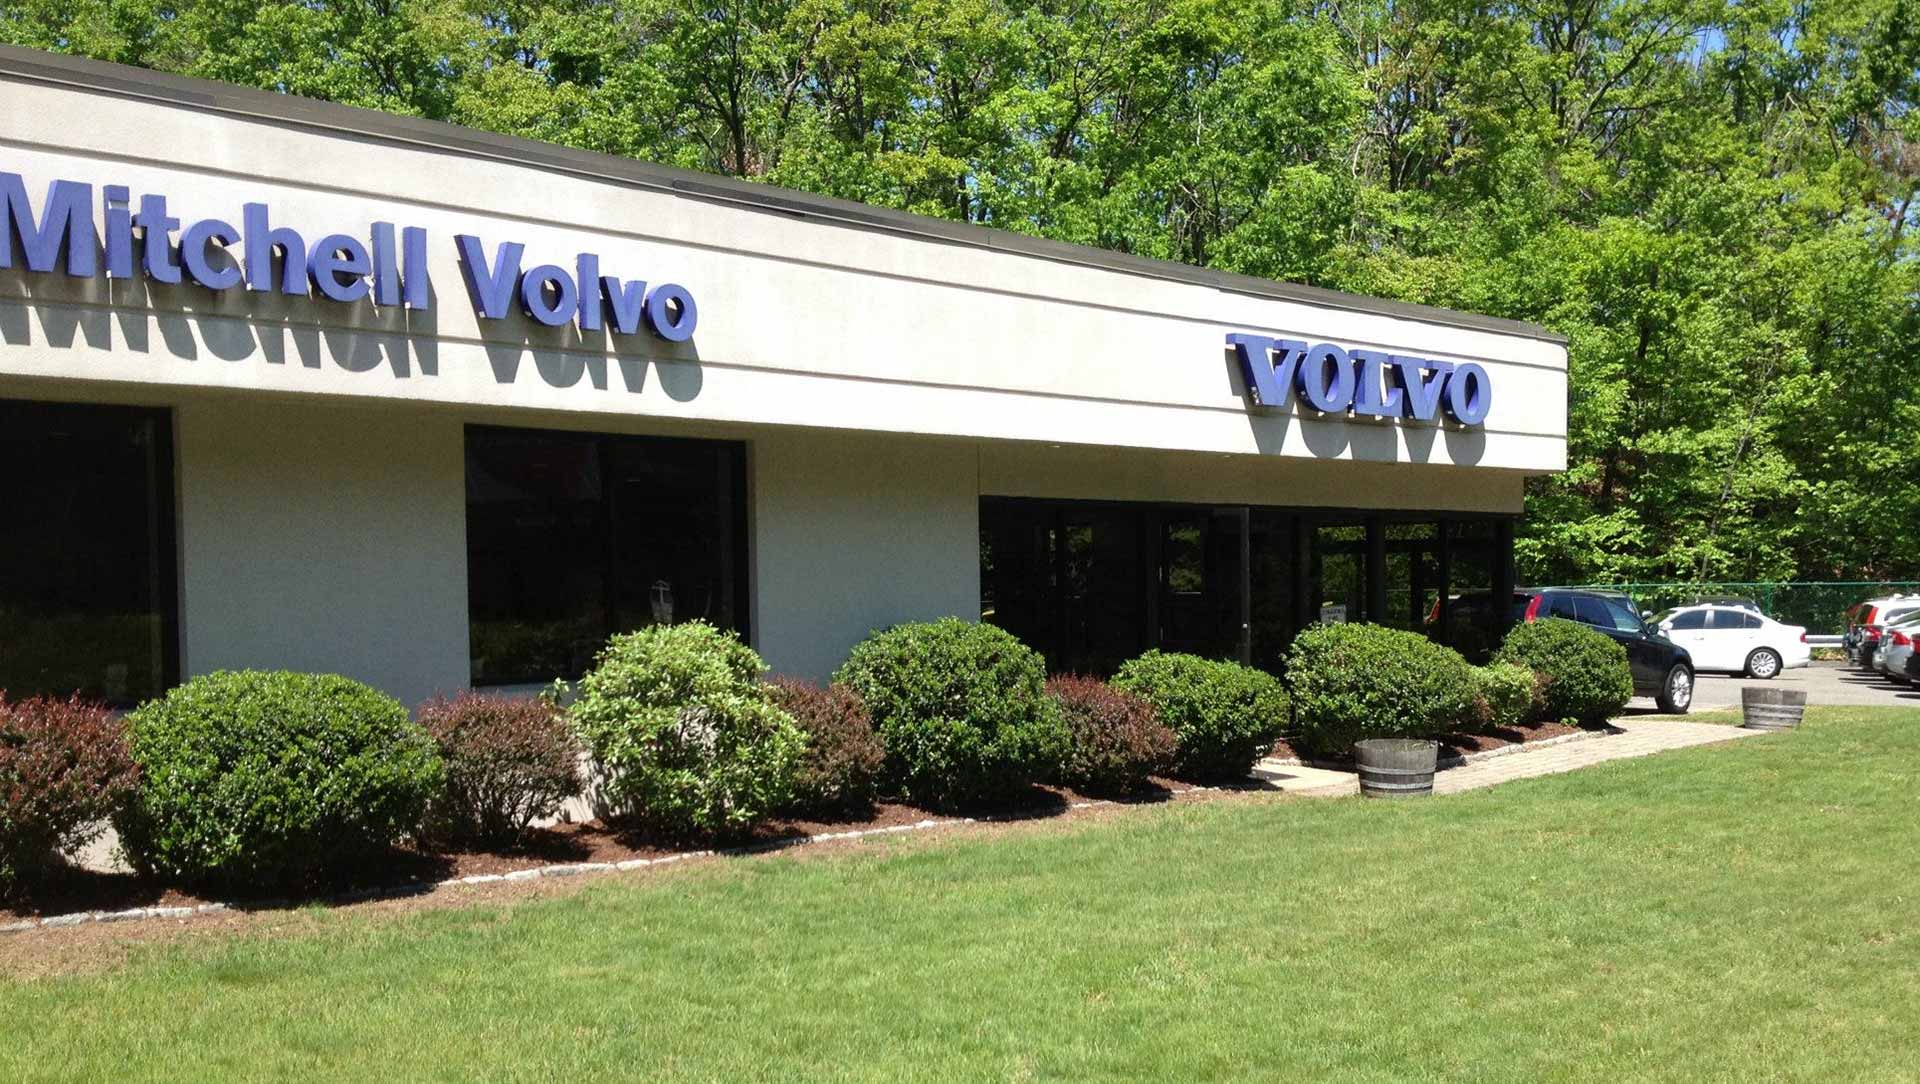 Construction company moving into former Volvo dealership in Torrington